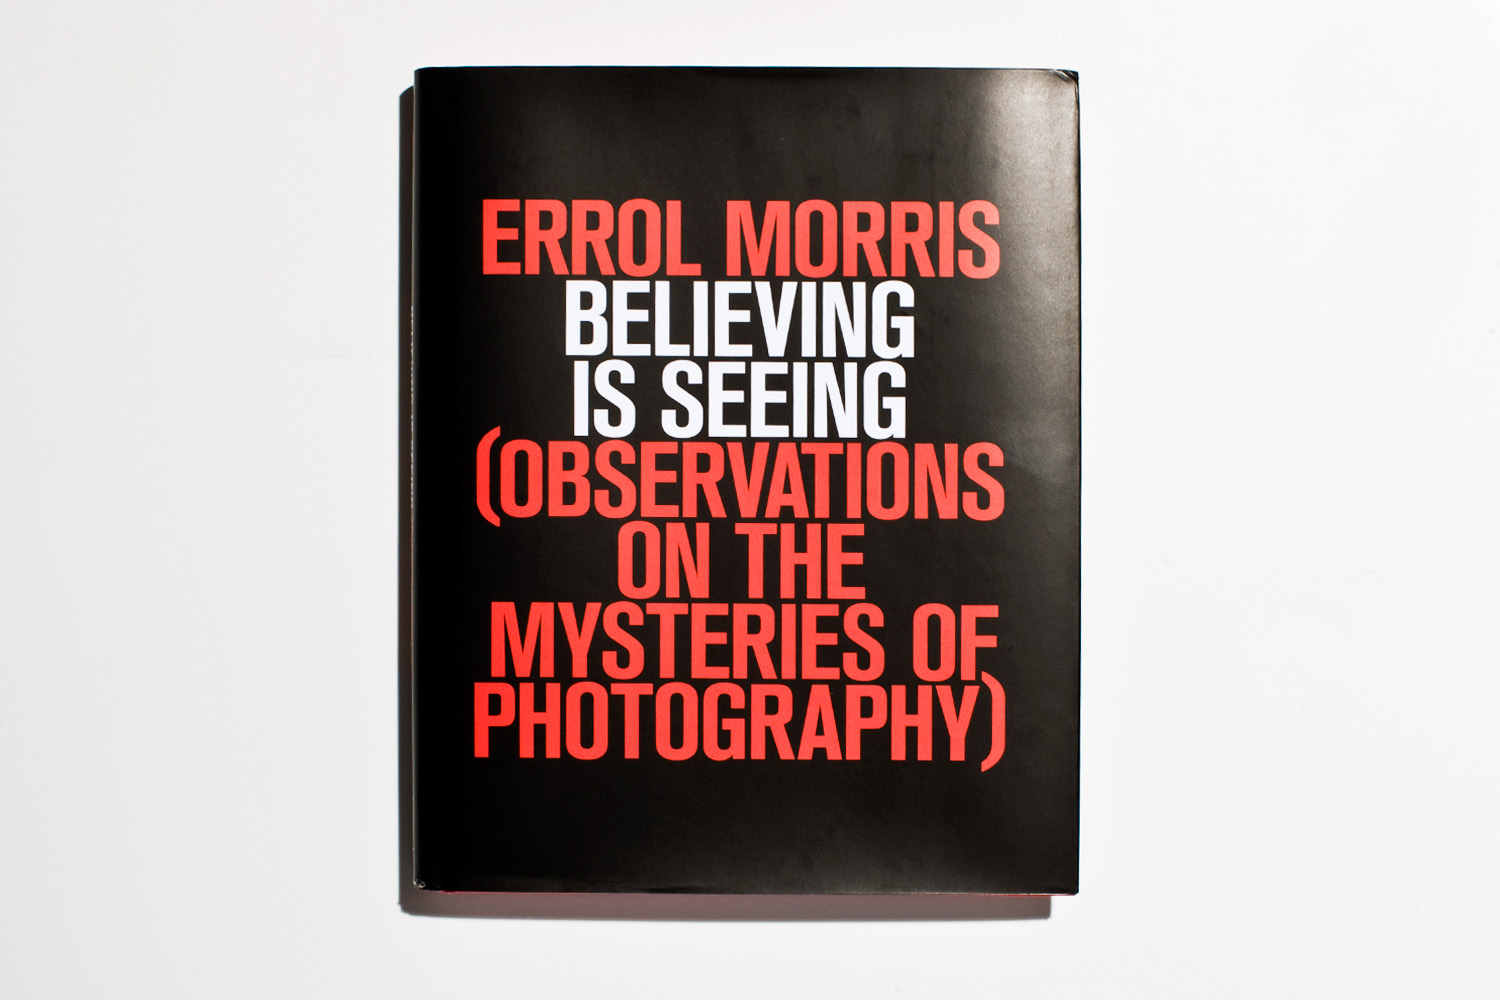 Believing is Seeing (Observations on the Mysteries of Photography) by Errol Morris selected by Dan Leers, The                                Beaumont and Nancy Newhall Curatorial Fellow, Department of Photography, The Museum of Modern Art